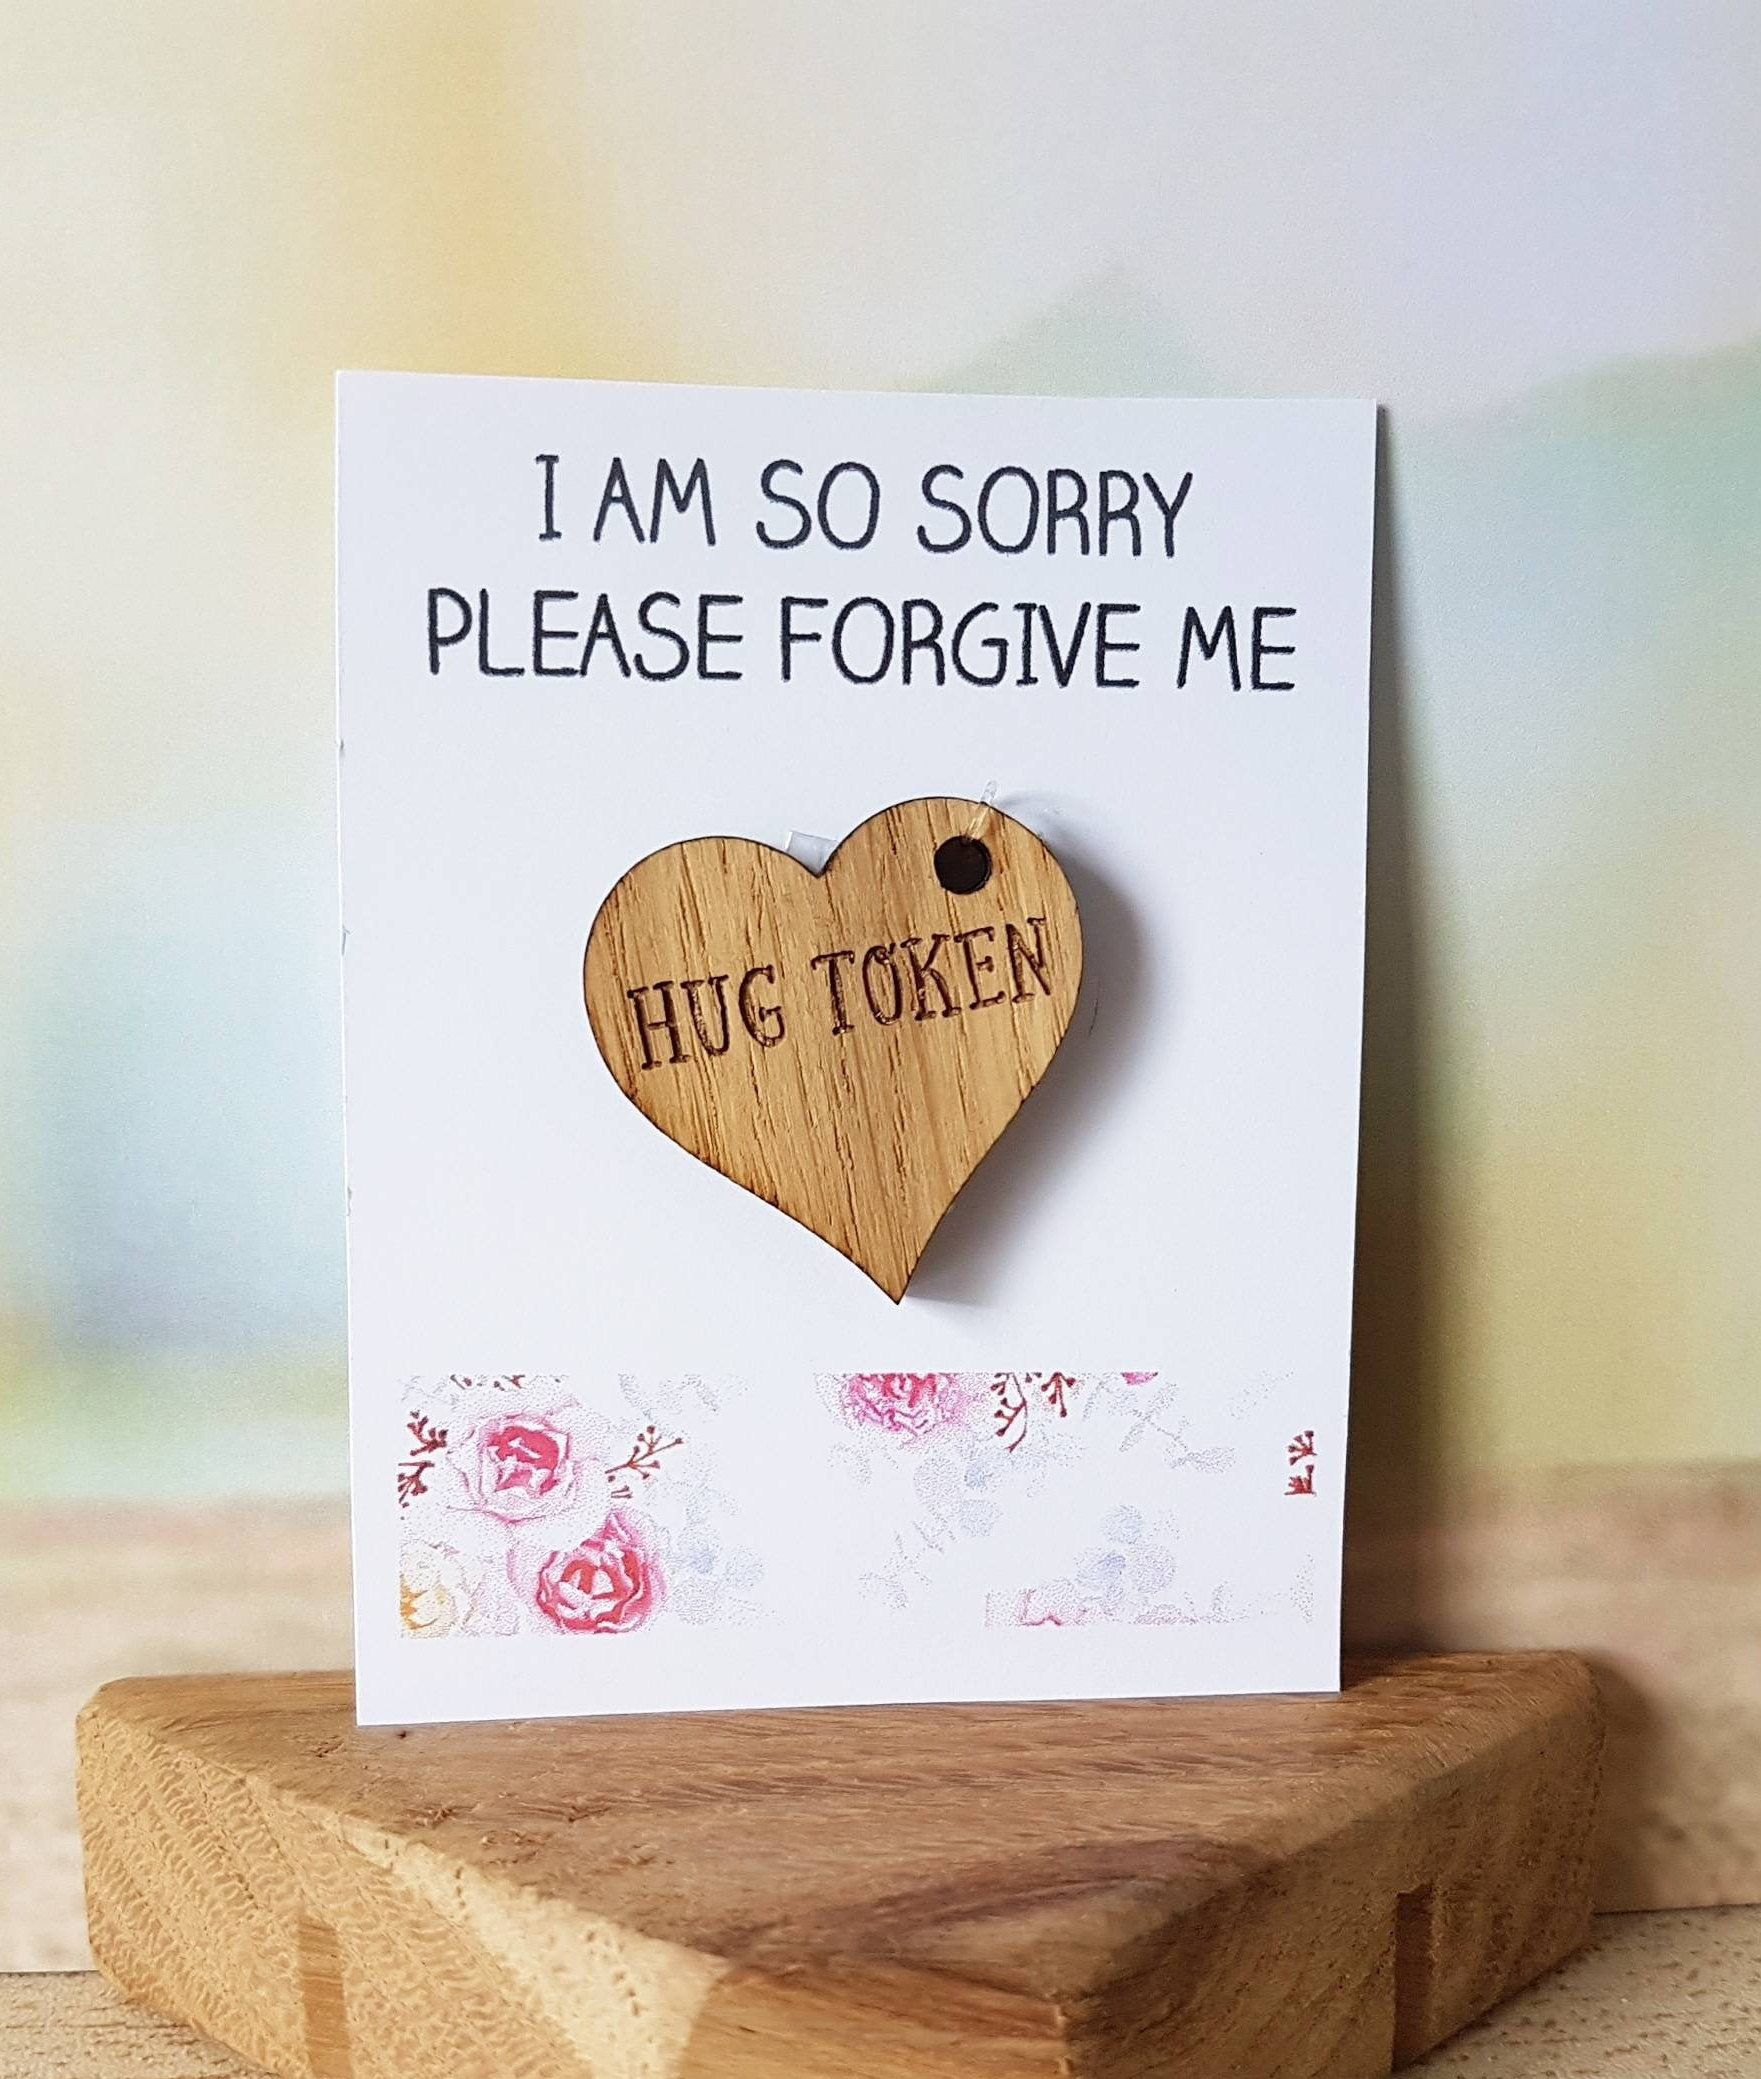 Apology gift im sorry sorry card i am sorry sorry